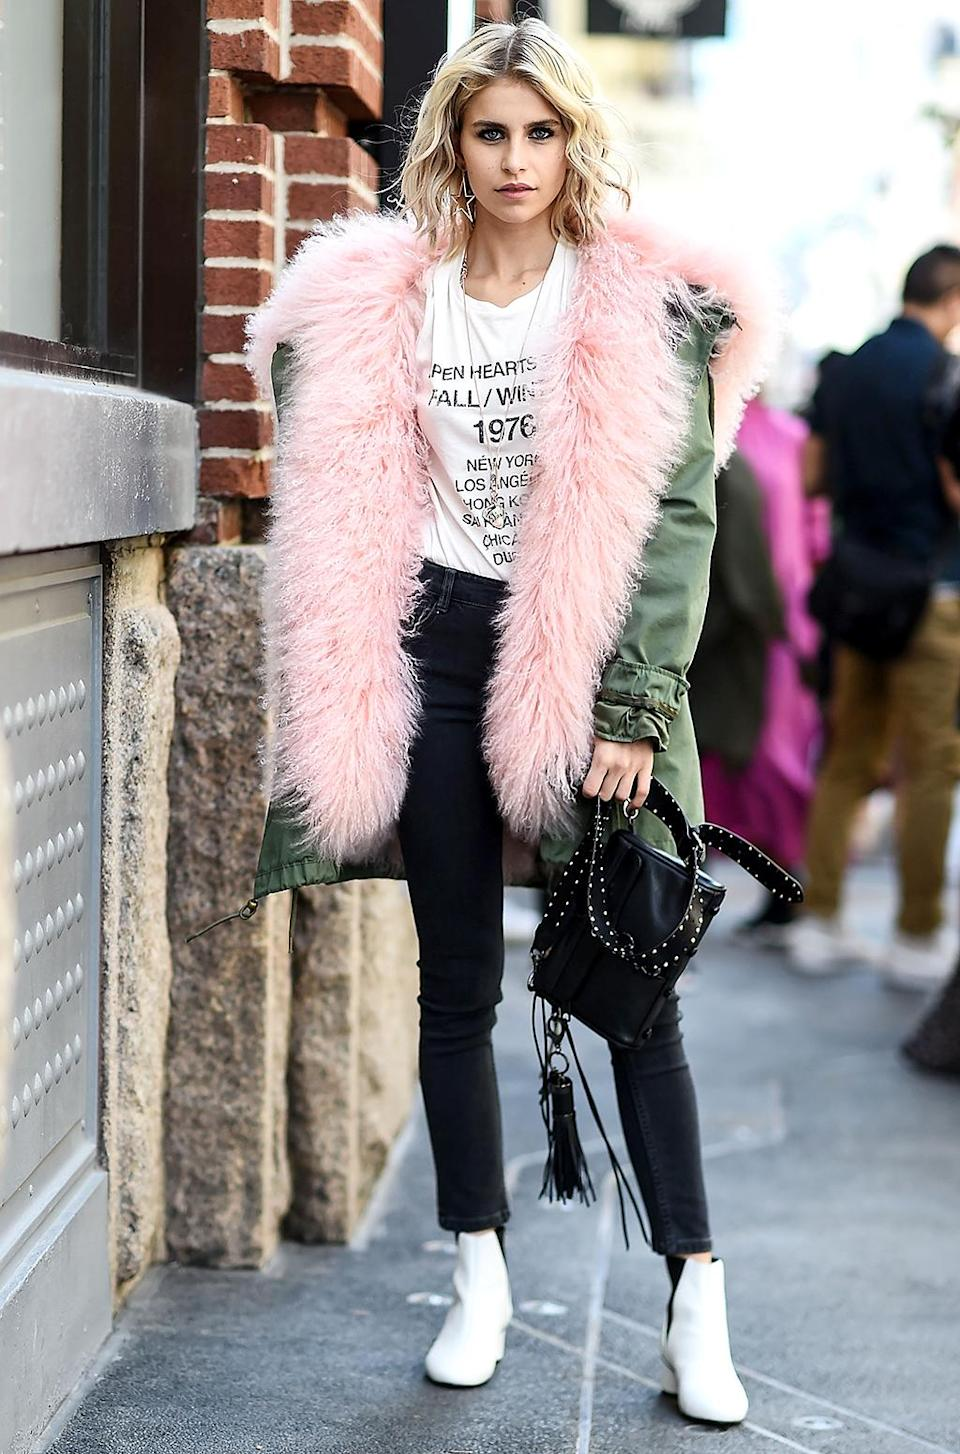 Caroline Daur beats the heat in a pink fur coat. (Photo: Daniel Zuchnik/Getty Images)